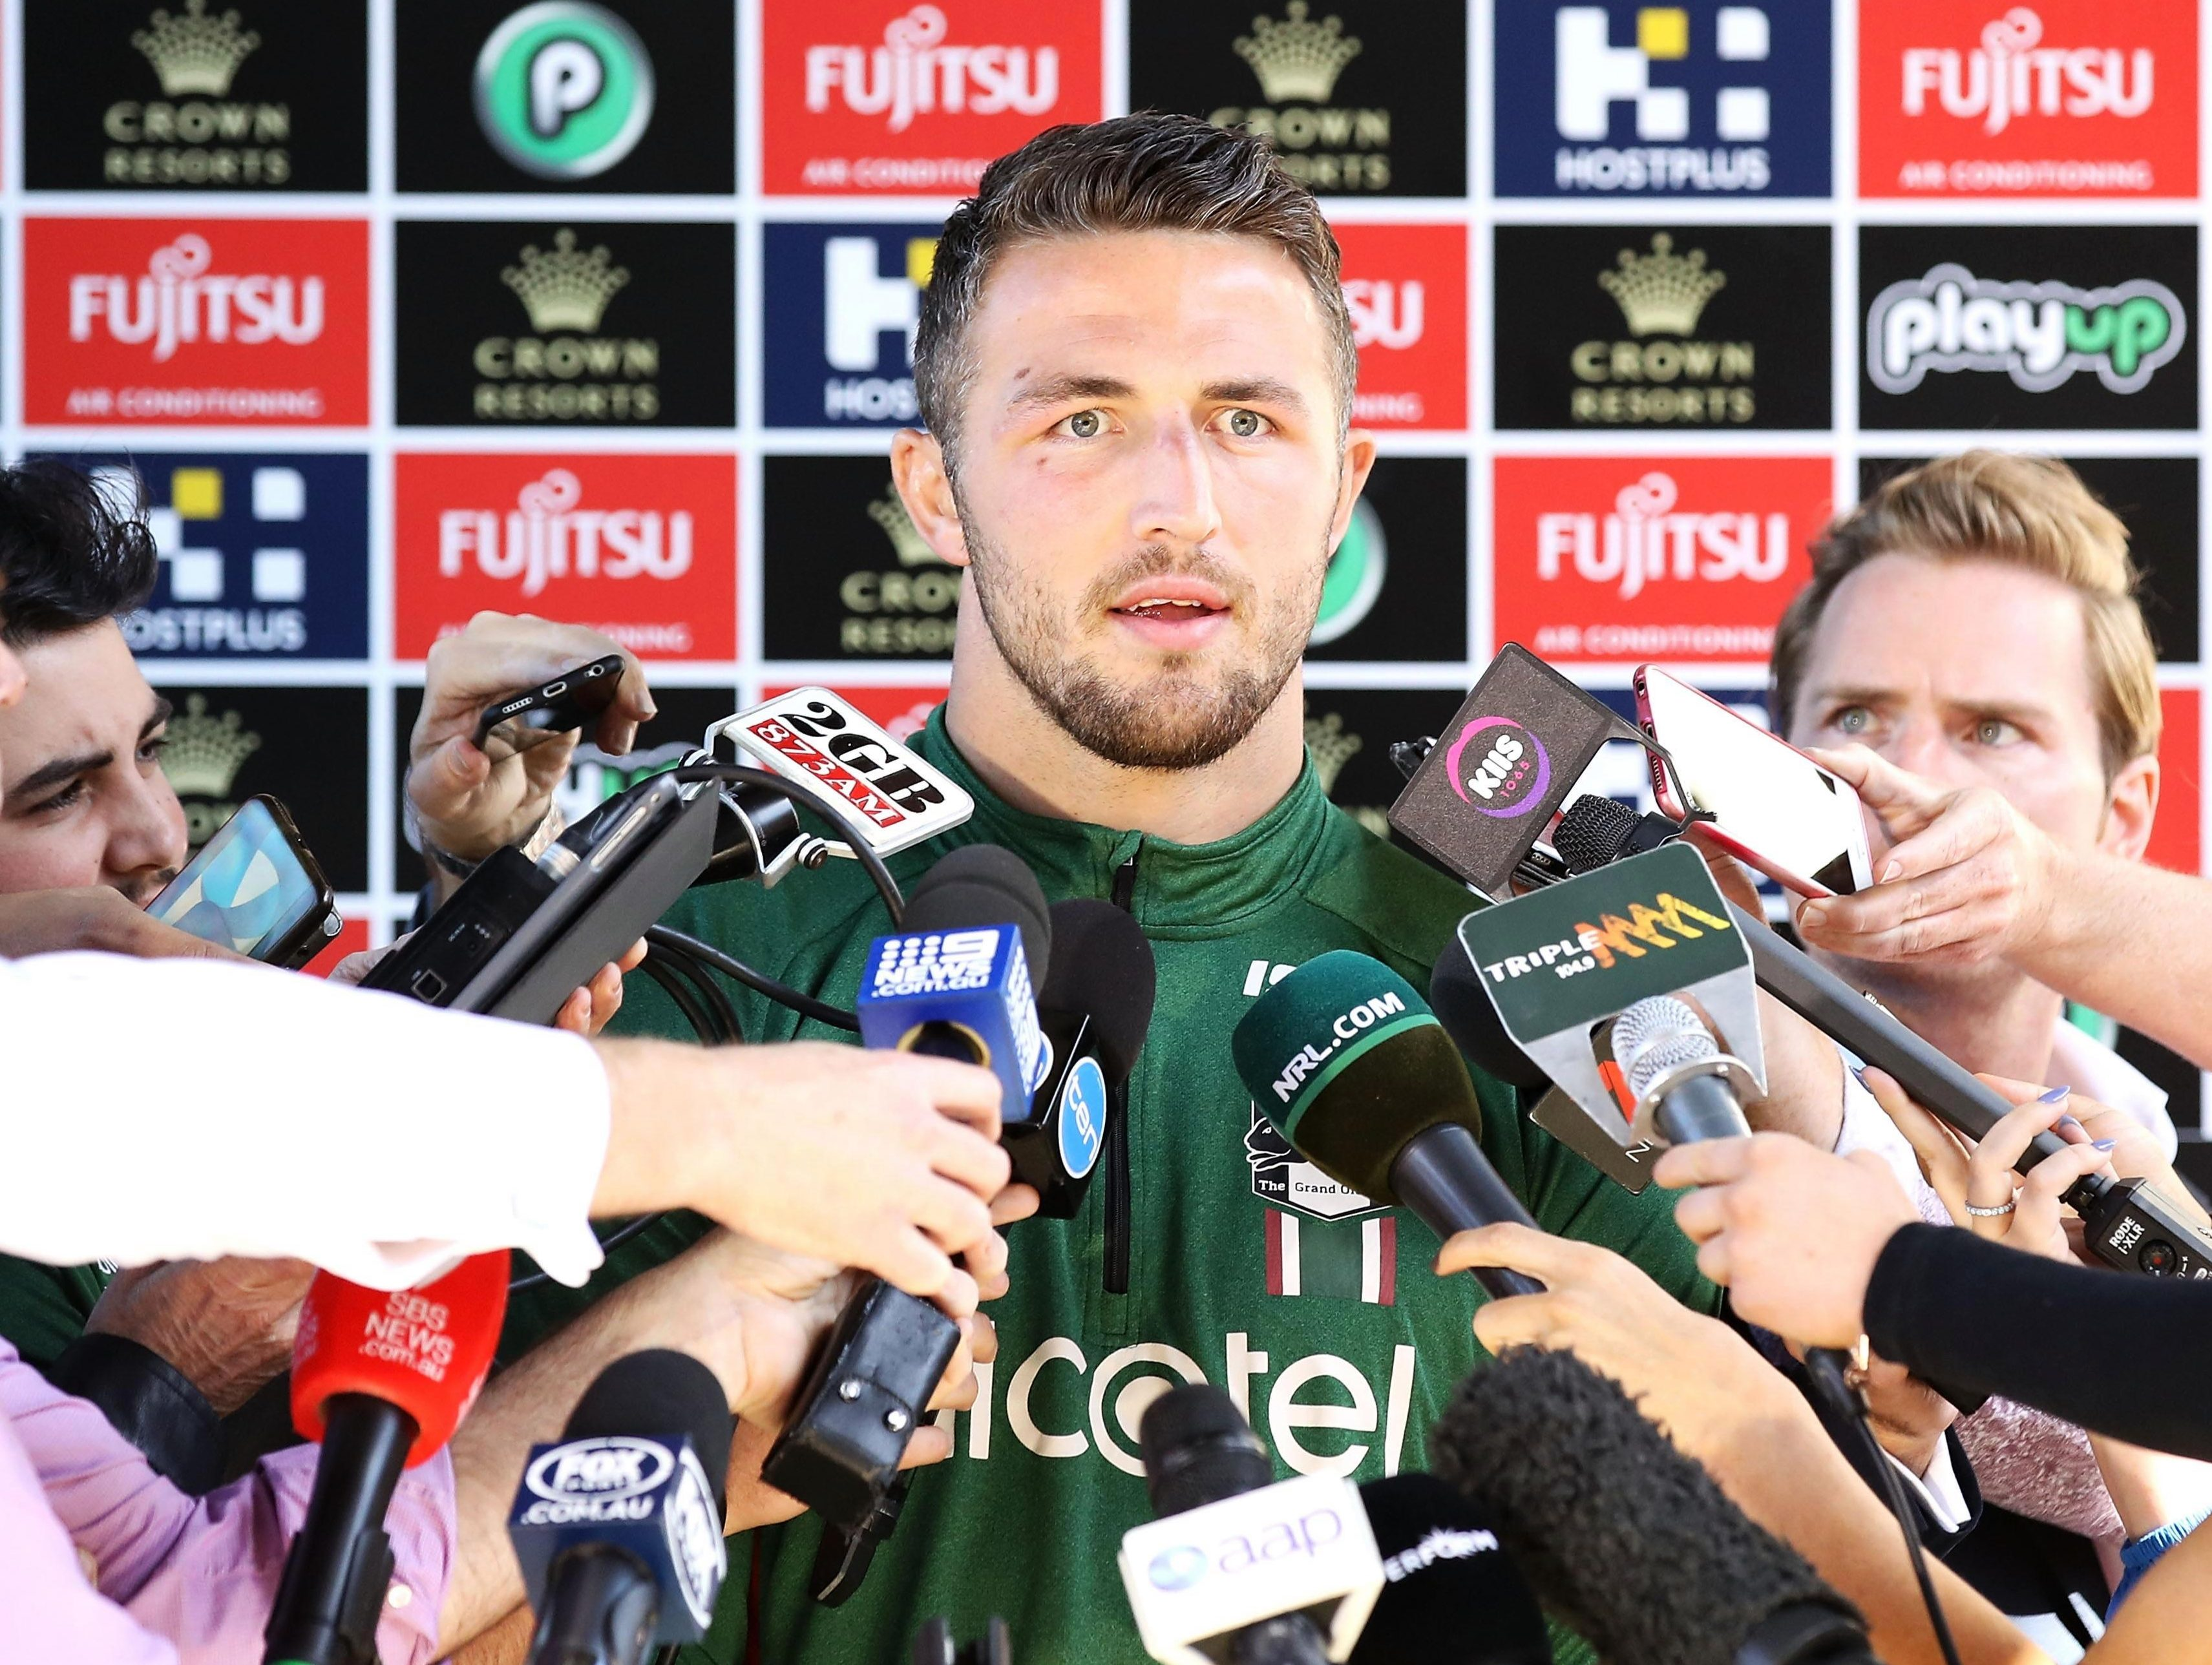 Burgess addressed the Australian media on Tuesday, where he said he had the full support of his wife Phoebe